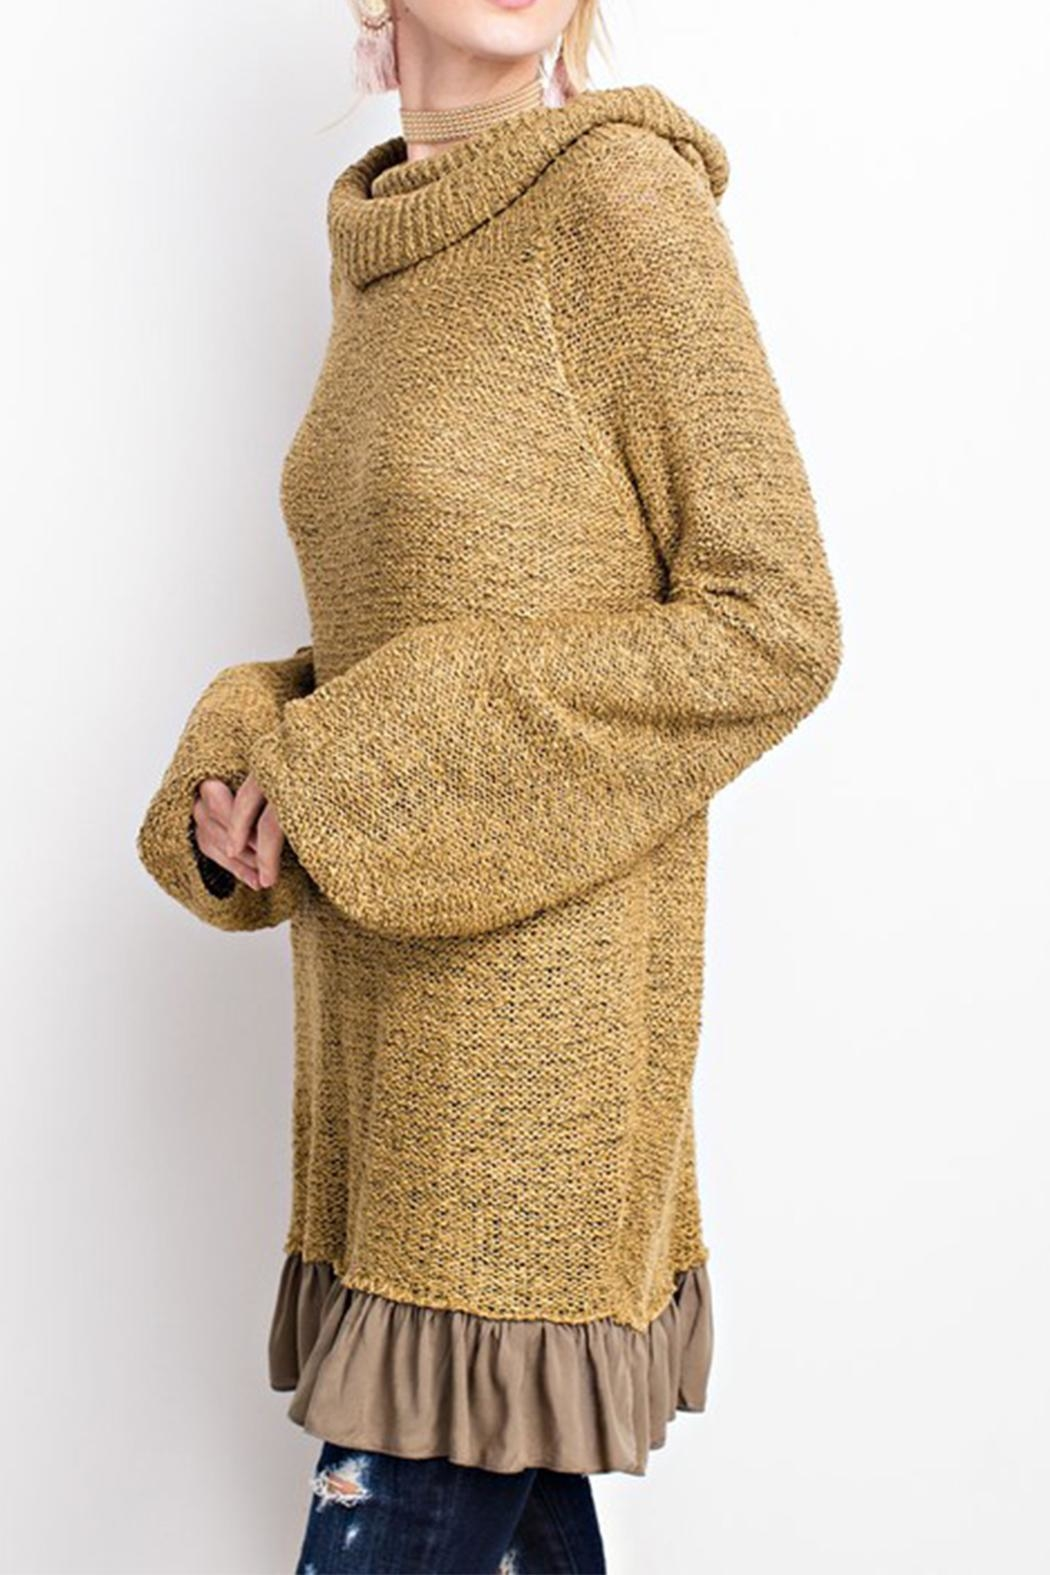 easel Knitted Sweater Tunic - Main Image